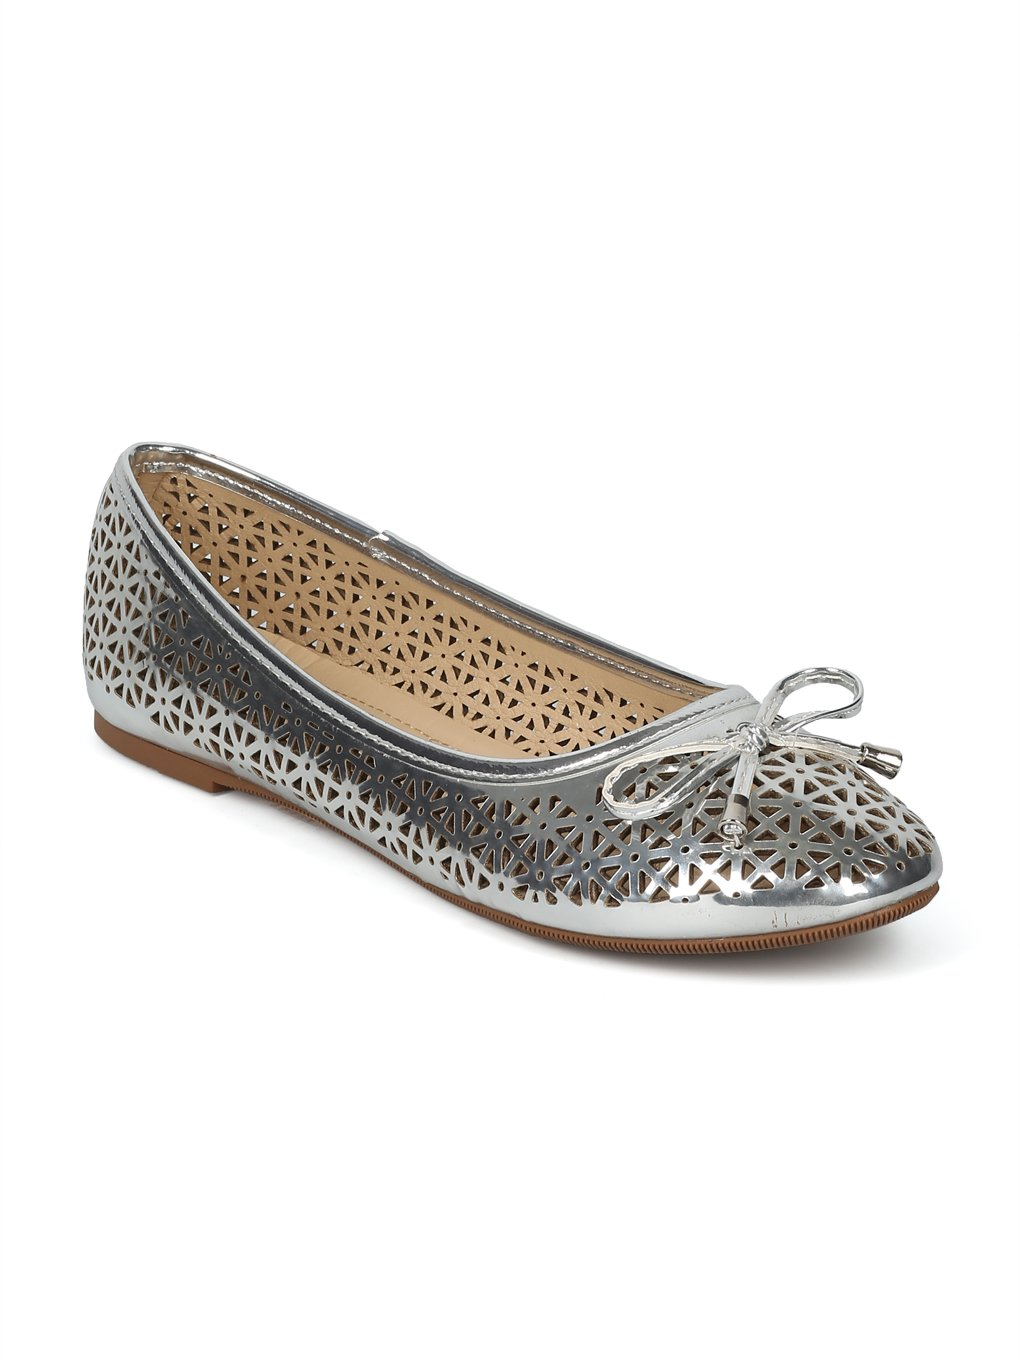 Alrisco Women Round Toe Bow Tie Perforated Ballet Flat HH88 B07D46N59C 7.5 B(M) US|Silver Metallic